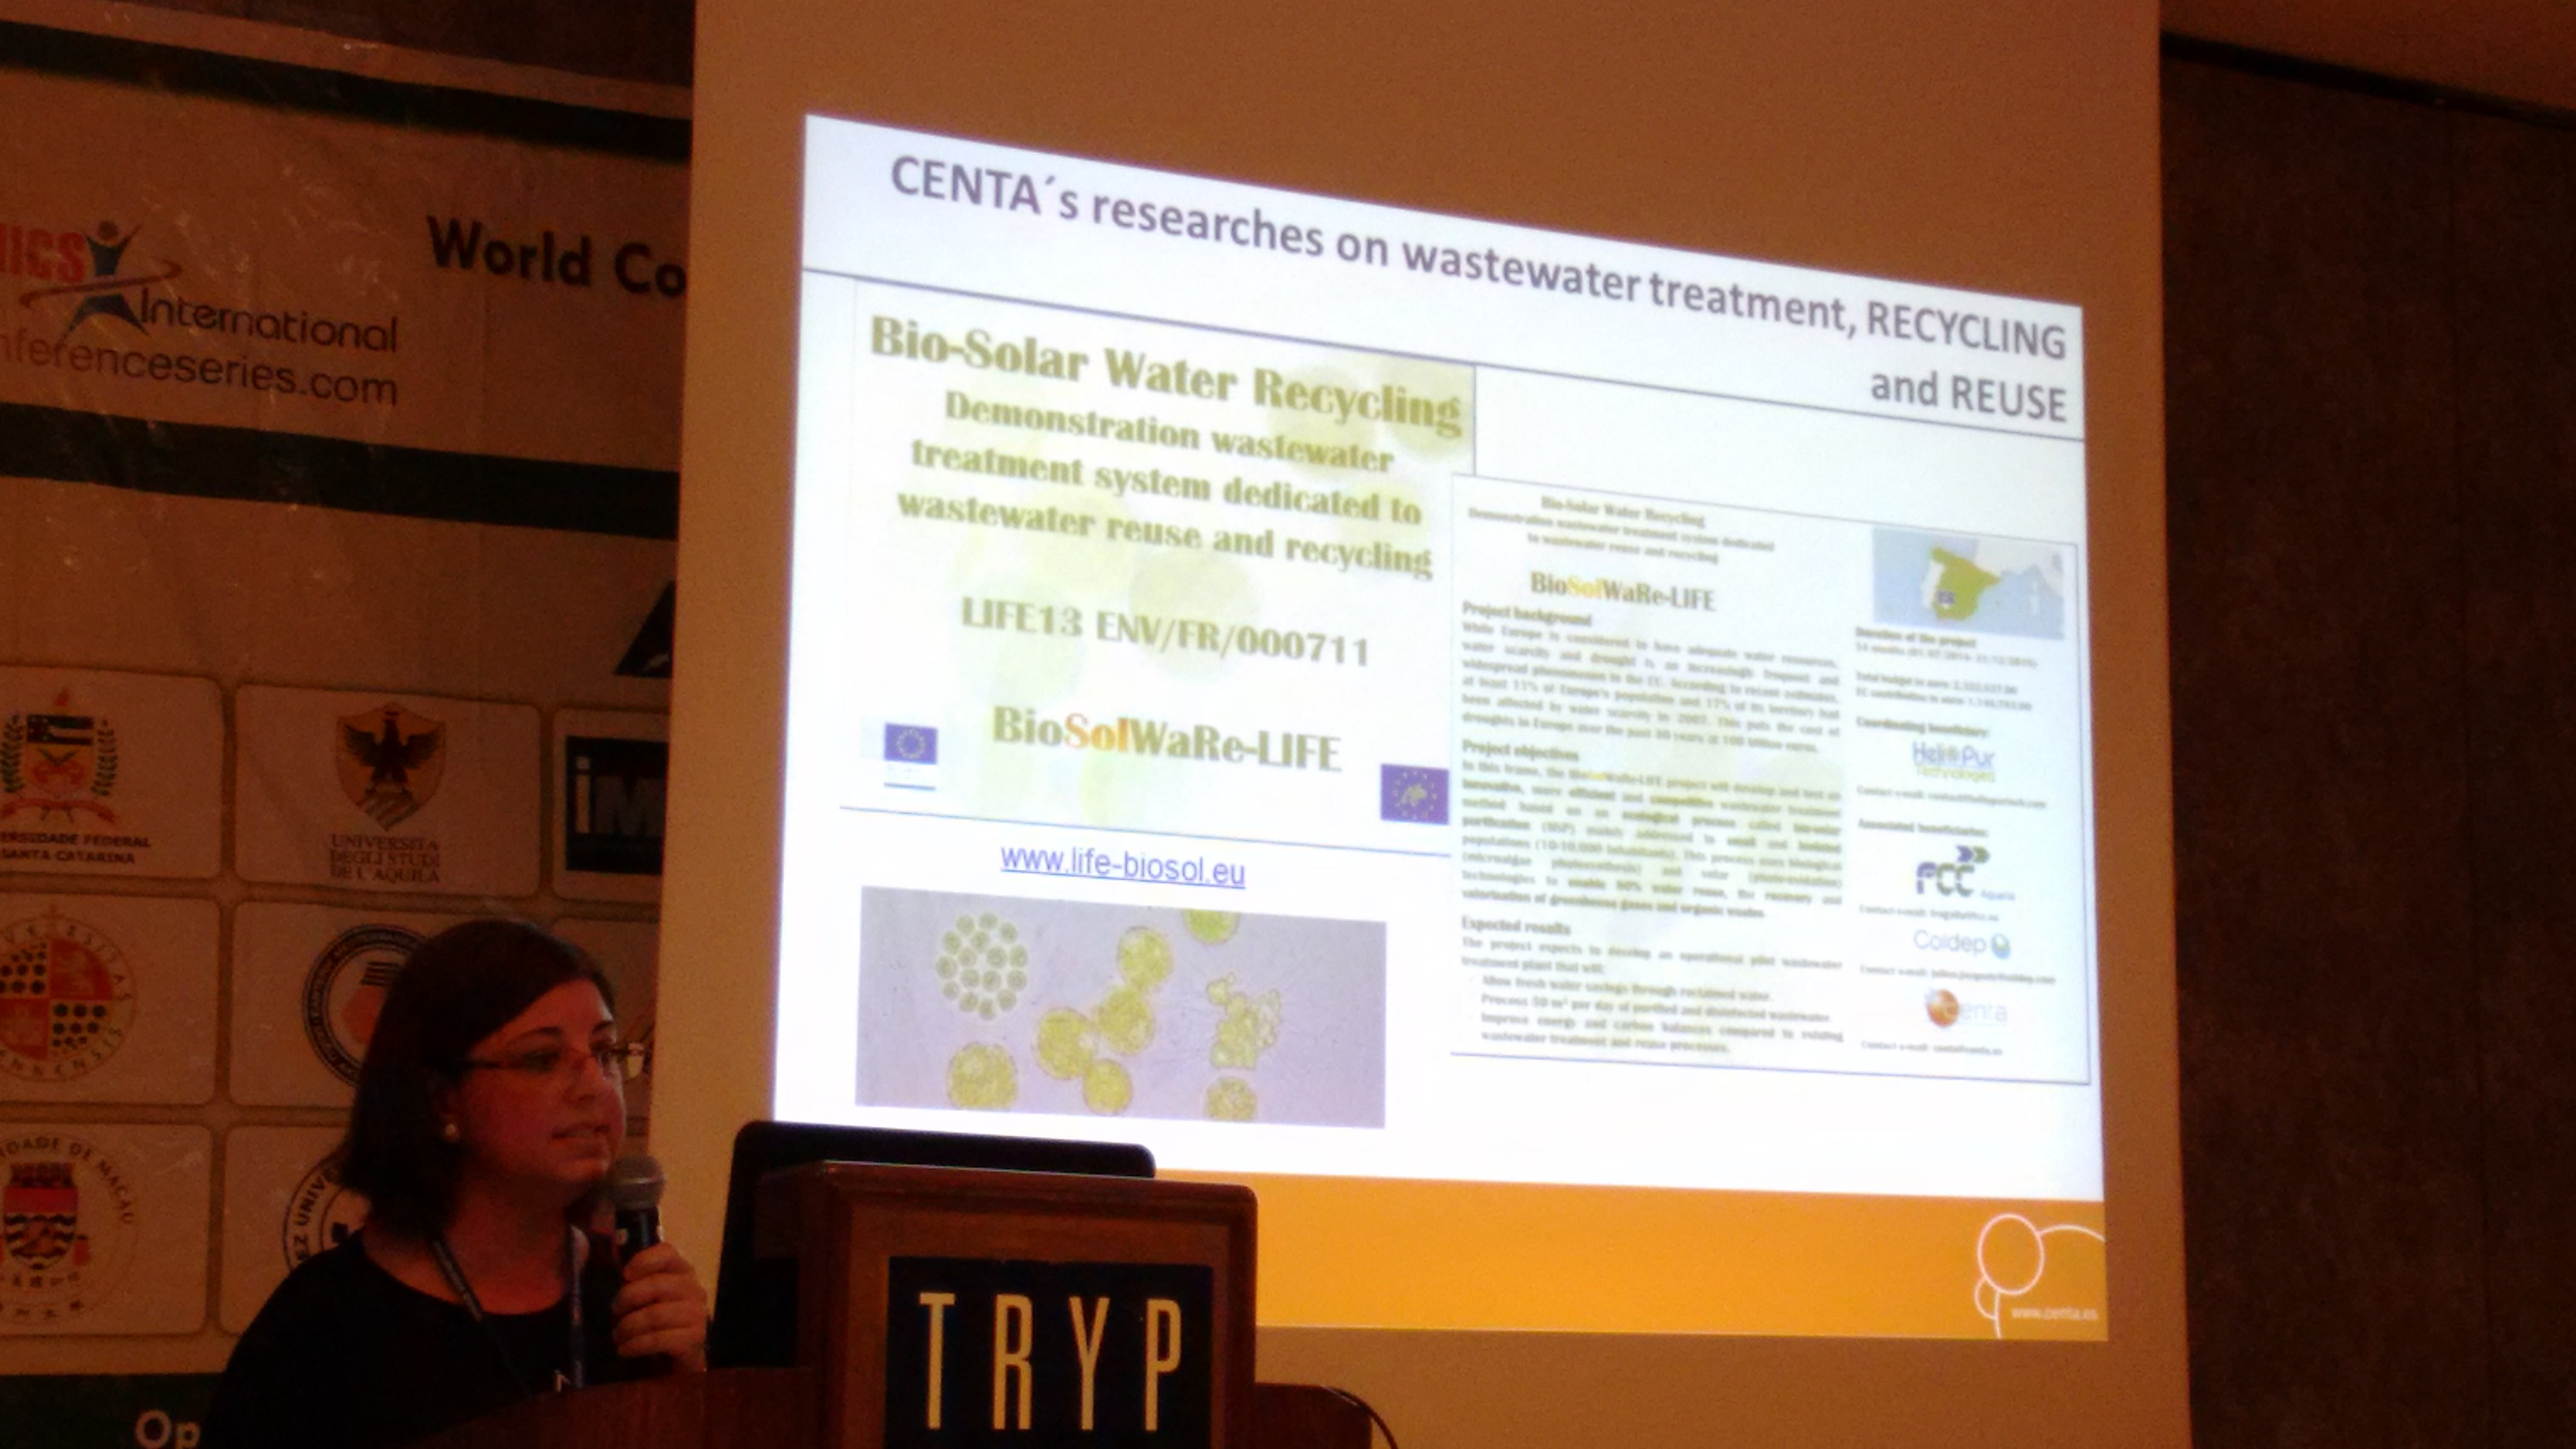 BioSolWaRe project was presented by CENTA in the World Congress and Expo on Recycling